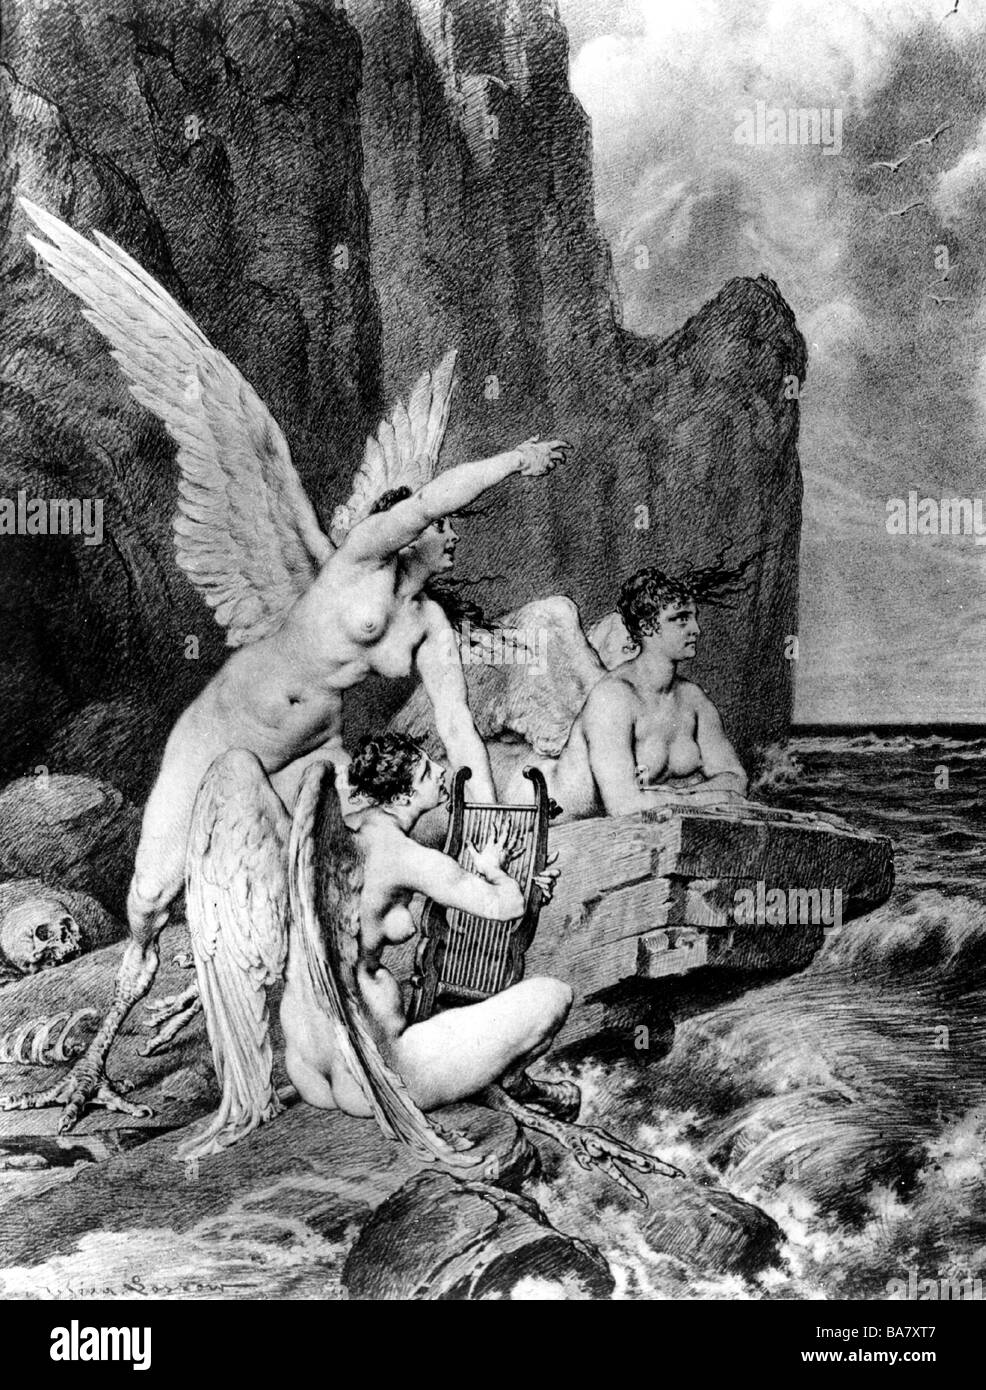 Sirens, Greek mythical creatures, luring seafarers into a trap with their singing, etching by Heinrich Lossow, 19th - Stock Image